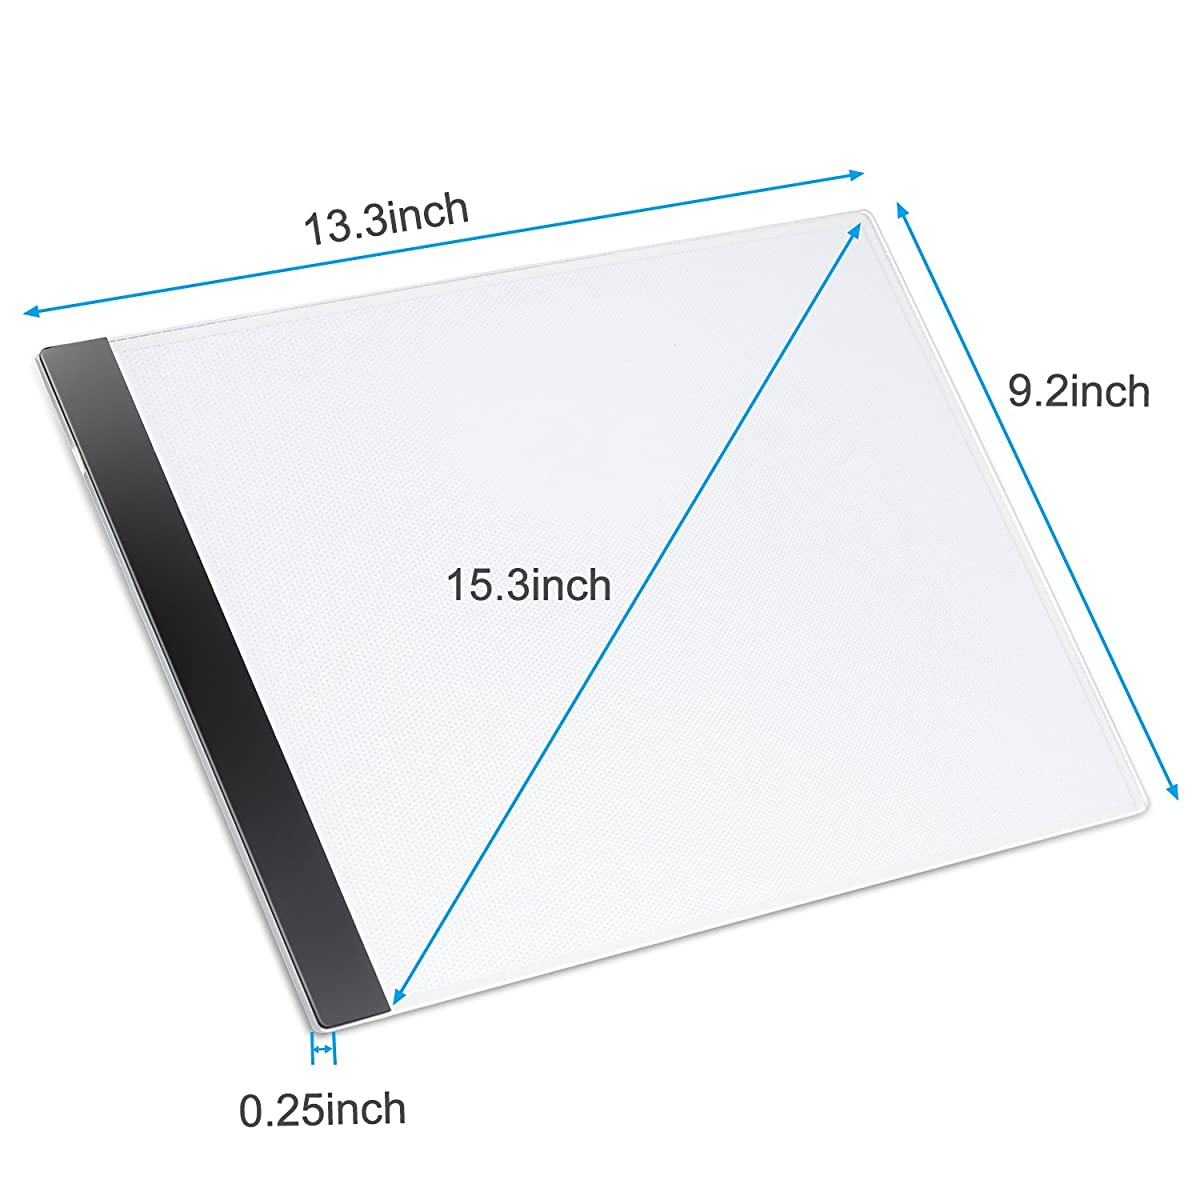 Kohree A4 LED Tracing Light Box Tracer Portable Artists Drawing Board Copyboard USB Power Cable Artcraft Tracing Light Pad for Sketching Animation Designing Stenciling X-ray Viewing